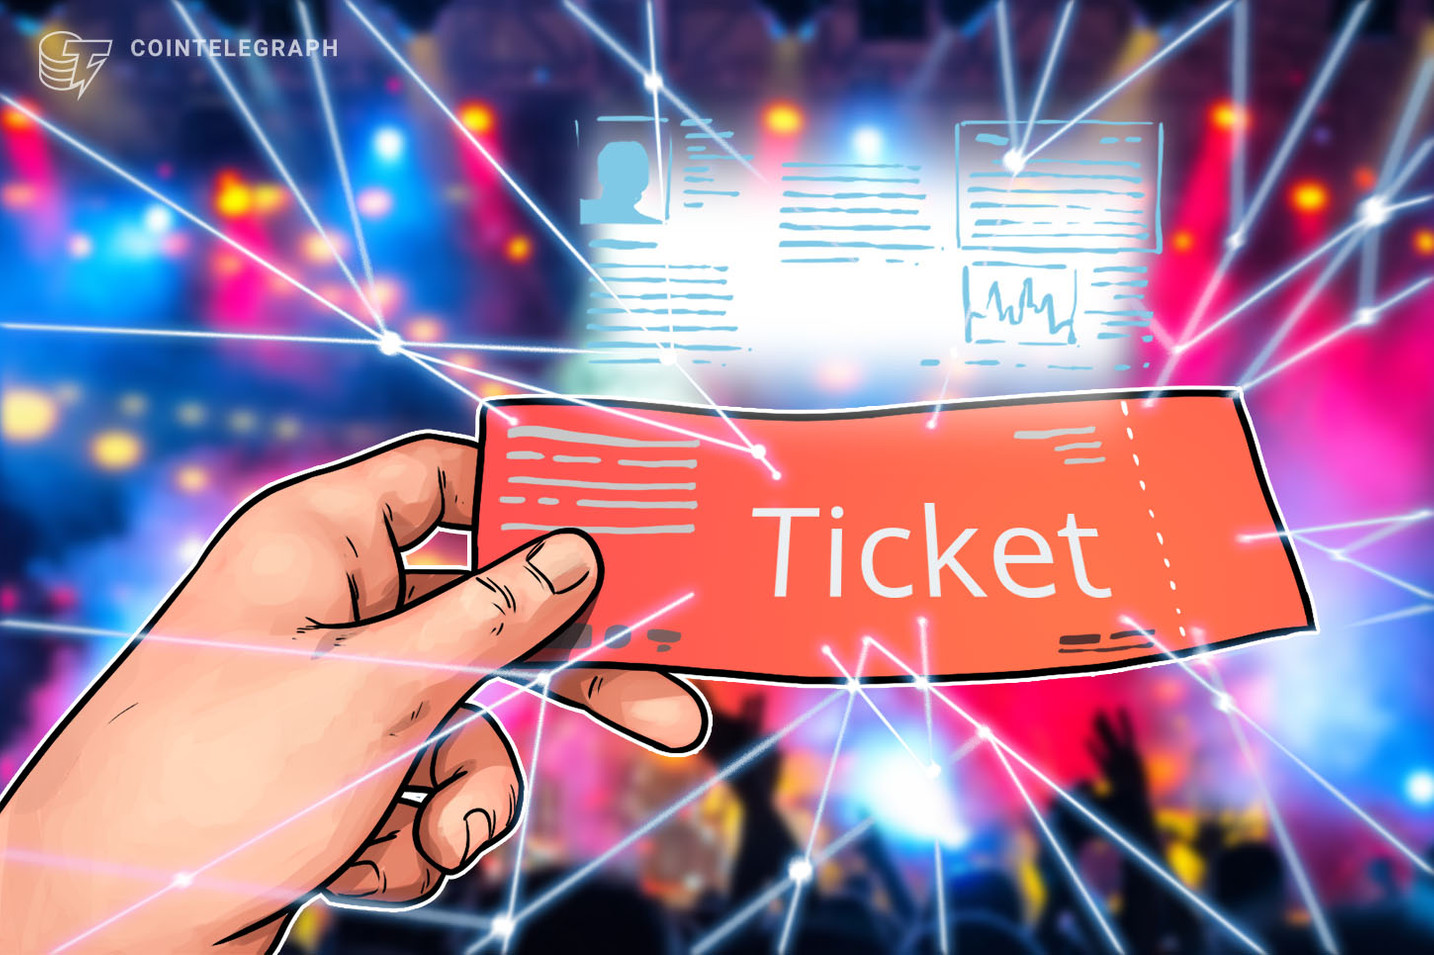 Blockbuster or a Bust? Tickets Industry Lines Up Around the Blockchain